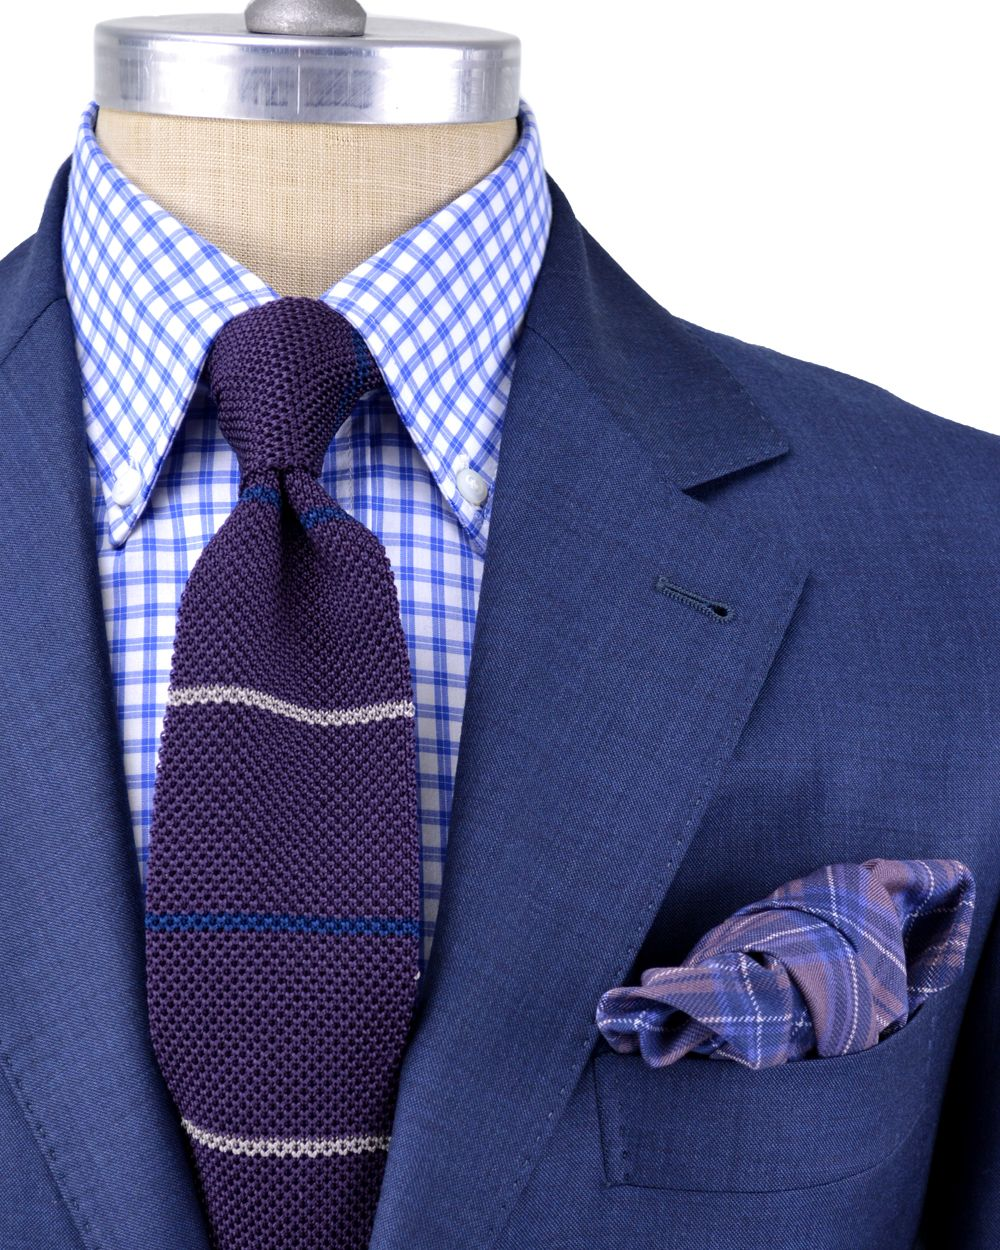 Brunello Cucinelli | Solid Navy Suit | Apparel | Men's